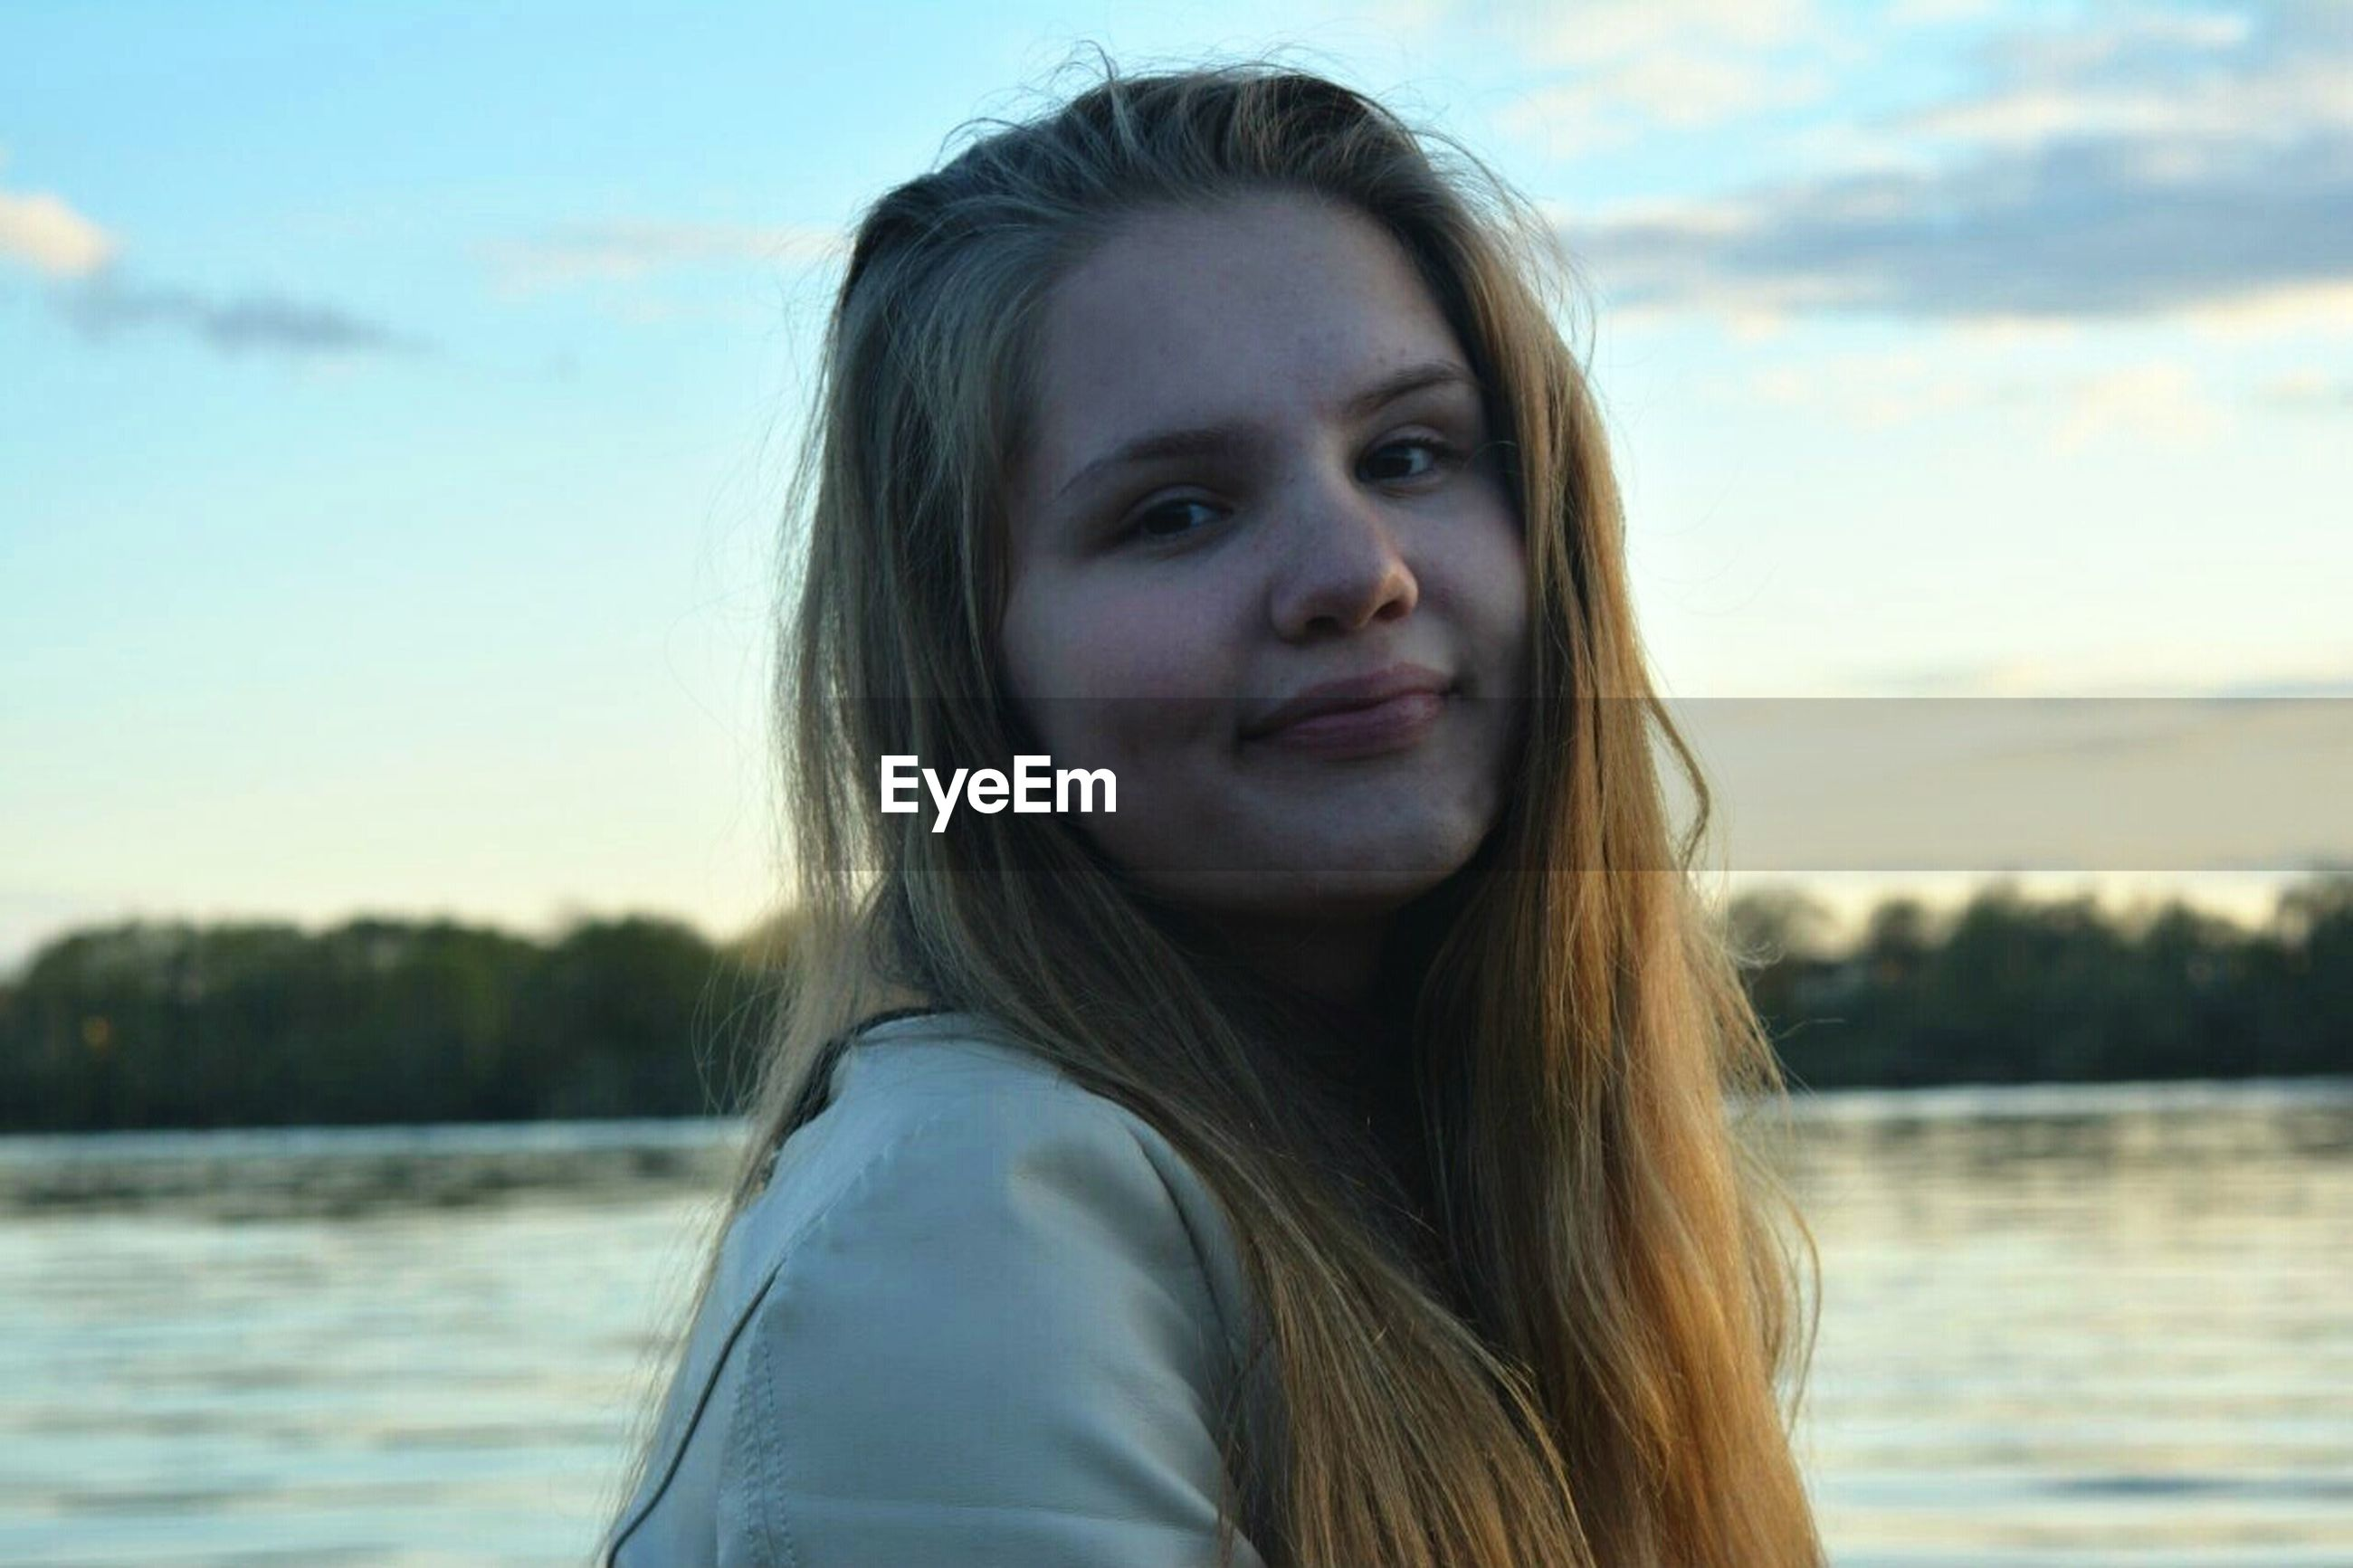 young adult, person, portrait, looking at camera, young women, long hair, lifestyles, water, headshot, focus on foreground, front view, leisure activity, smiling, head and shoulders, sky, casual clothing, brown hair